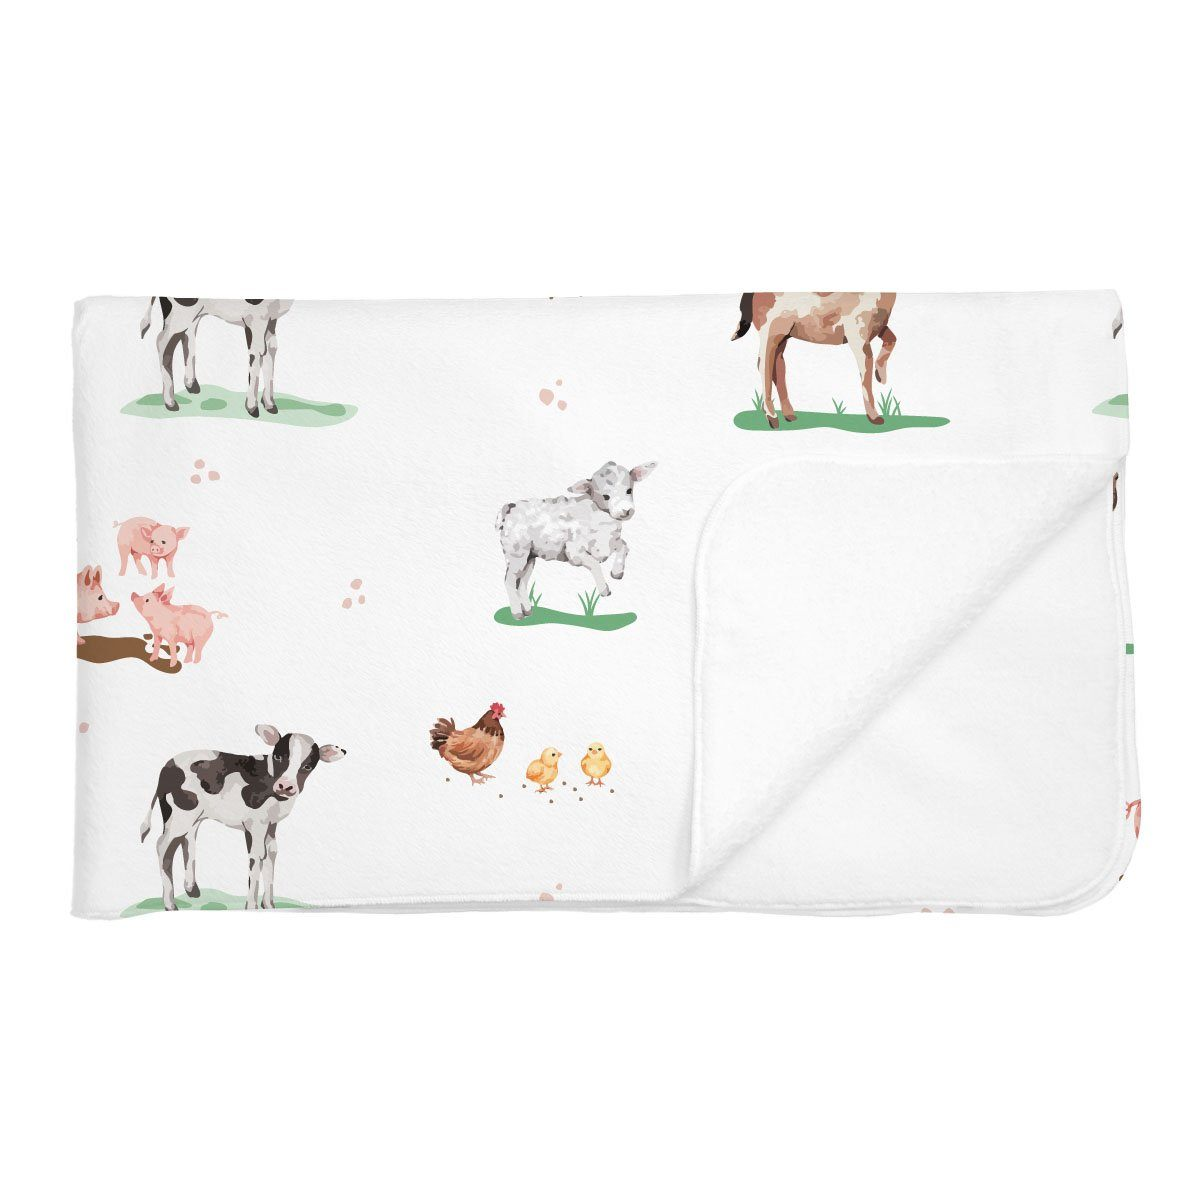 Hannah's Farm Animals | Adult Size Blanket